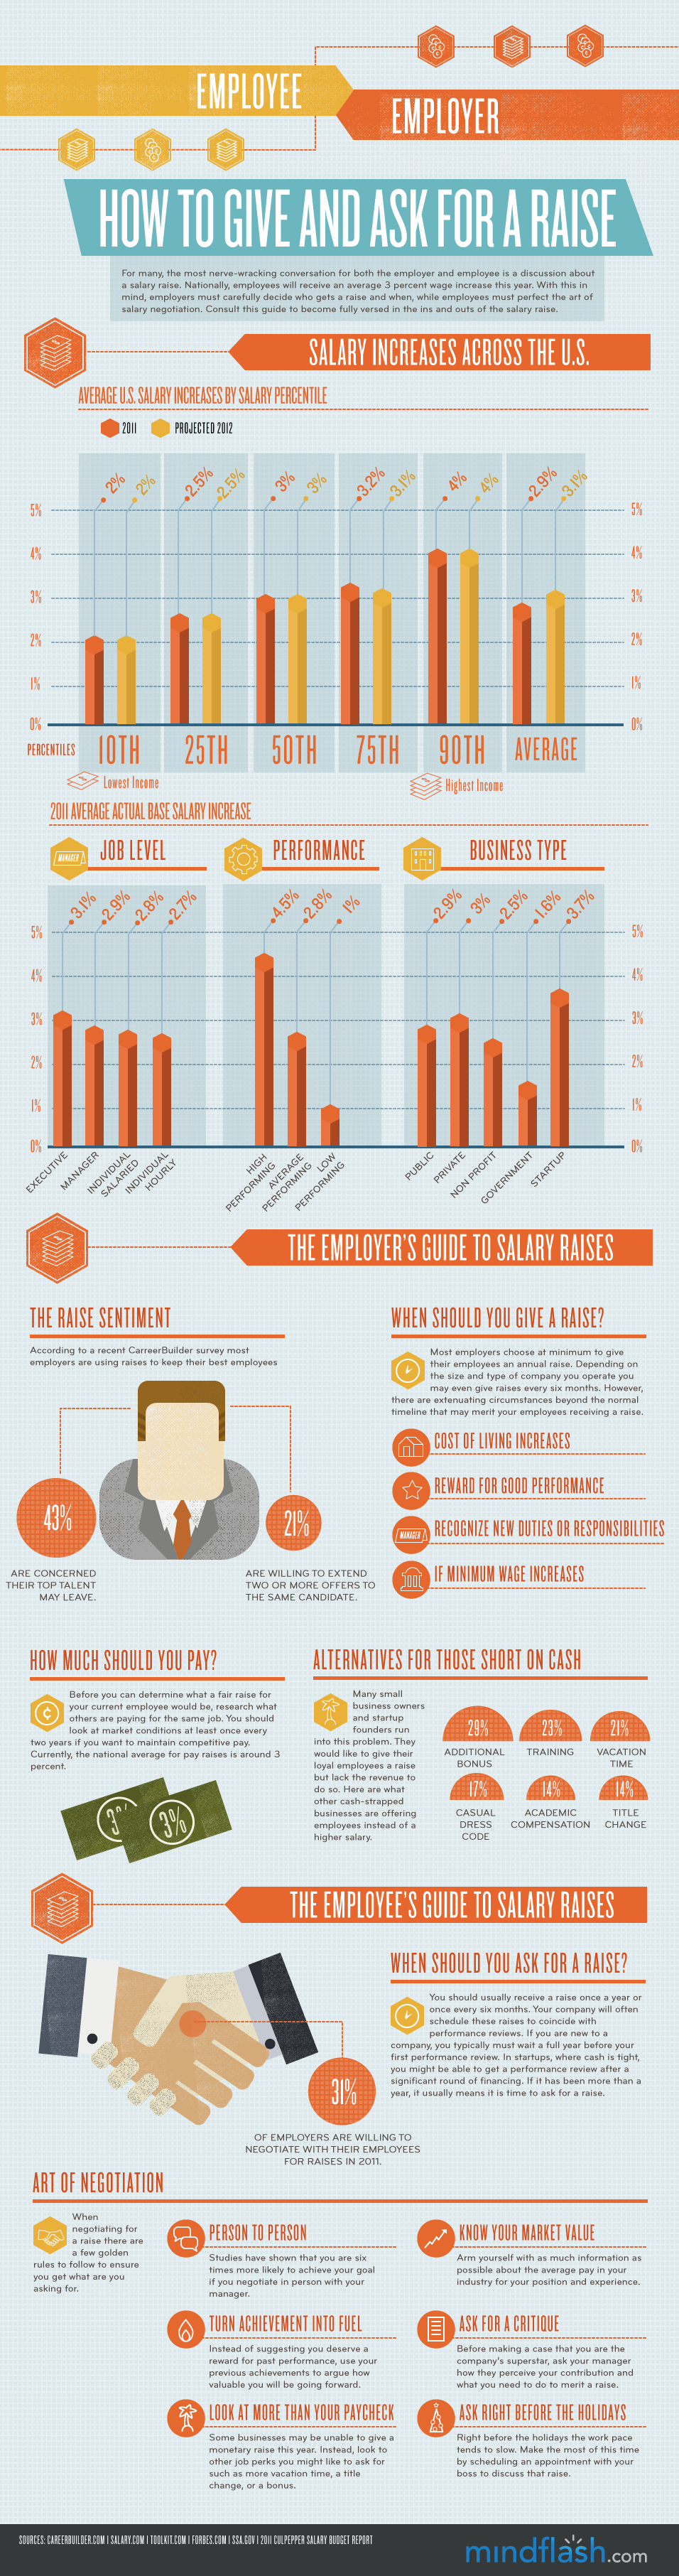 How to ask for a raise [infographic]